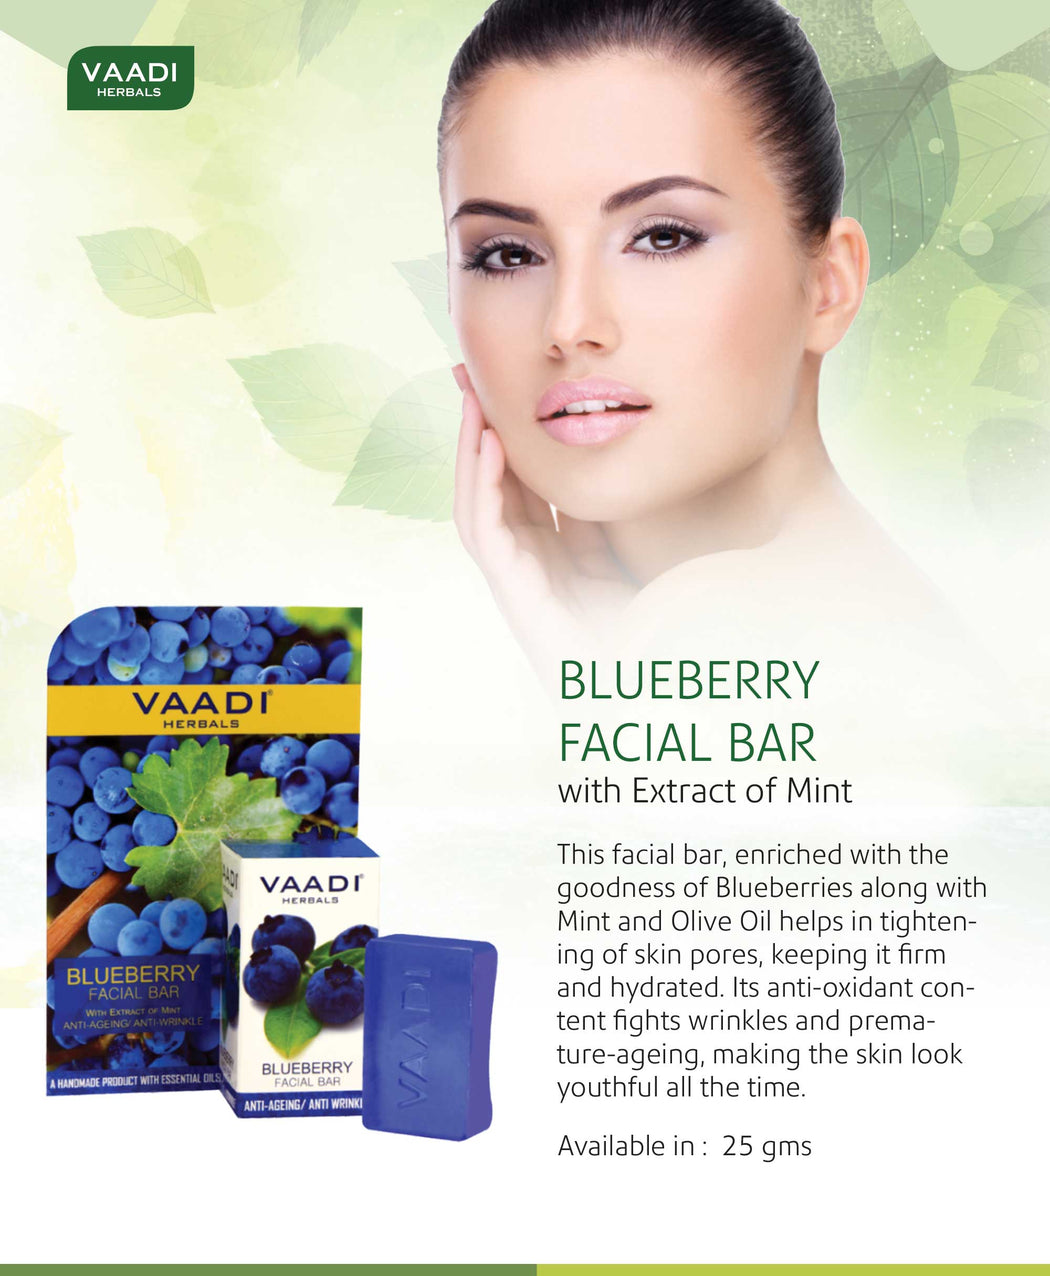 Organic Blueberry Facial Bar with Mint Extract & Olive Oil - Prevents Wrinkles - Makes Skin Youthful (25 gms/0.9 oz)